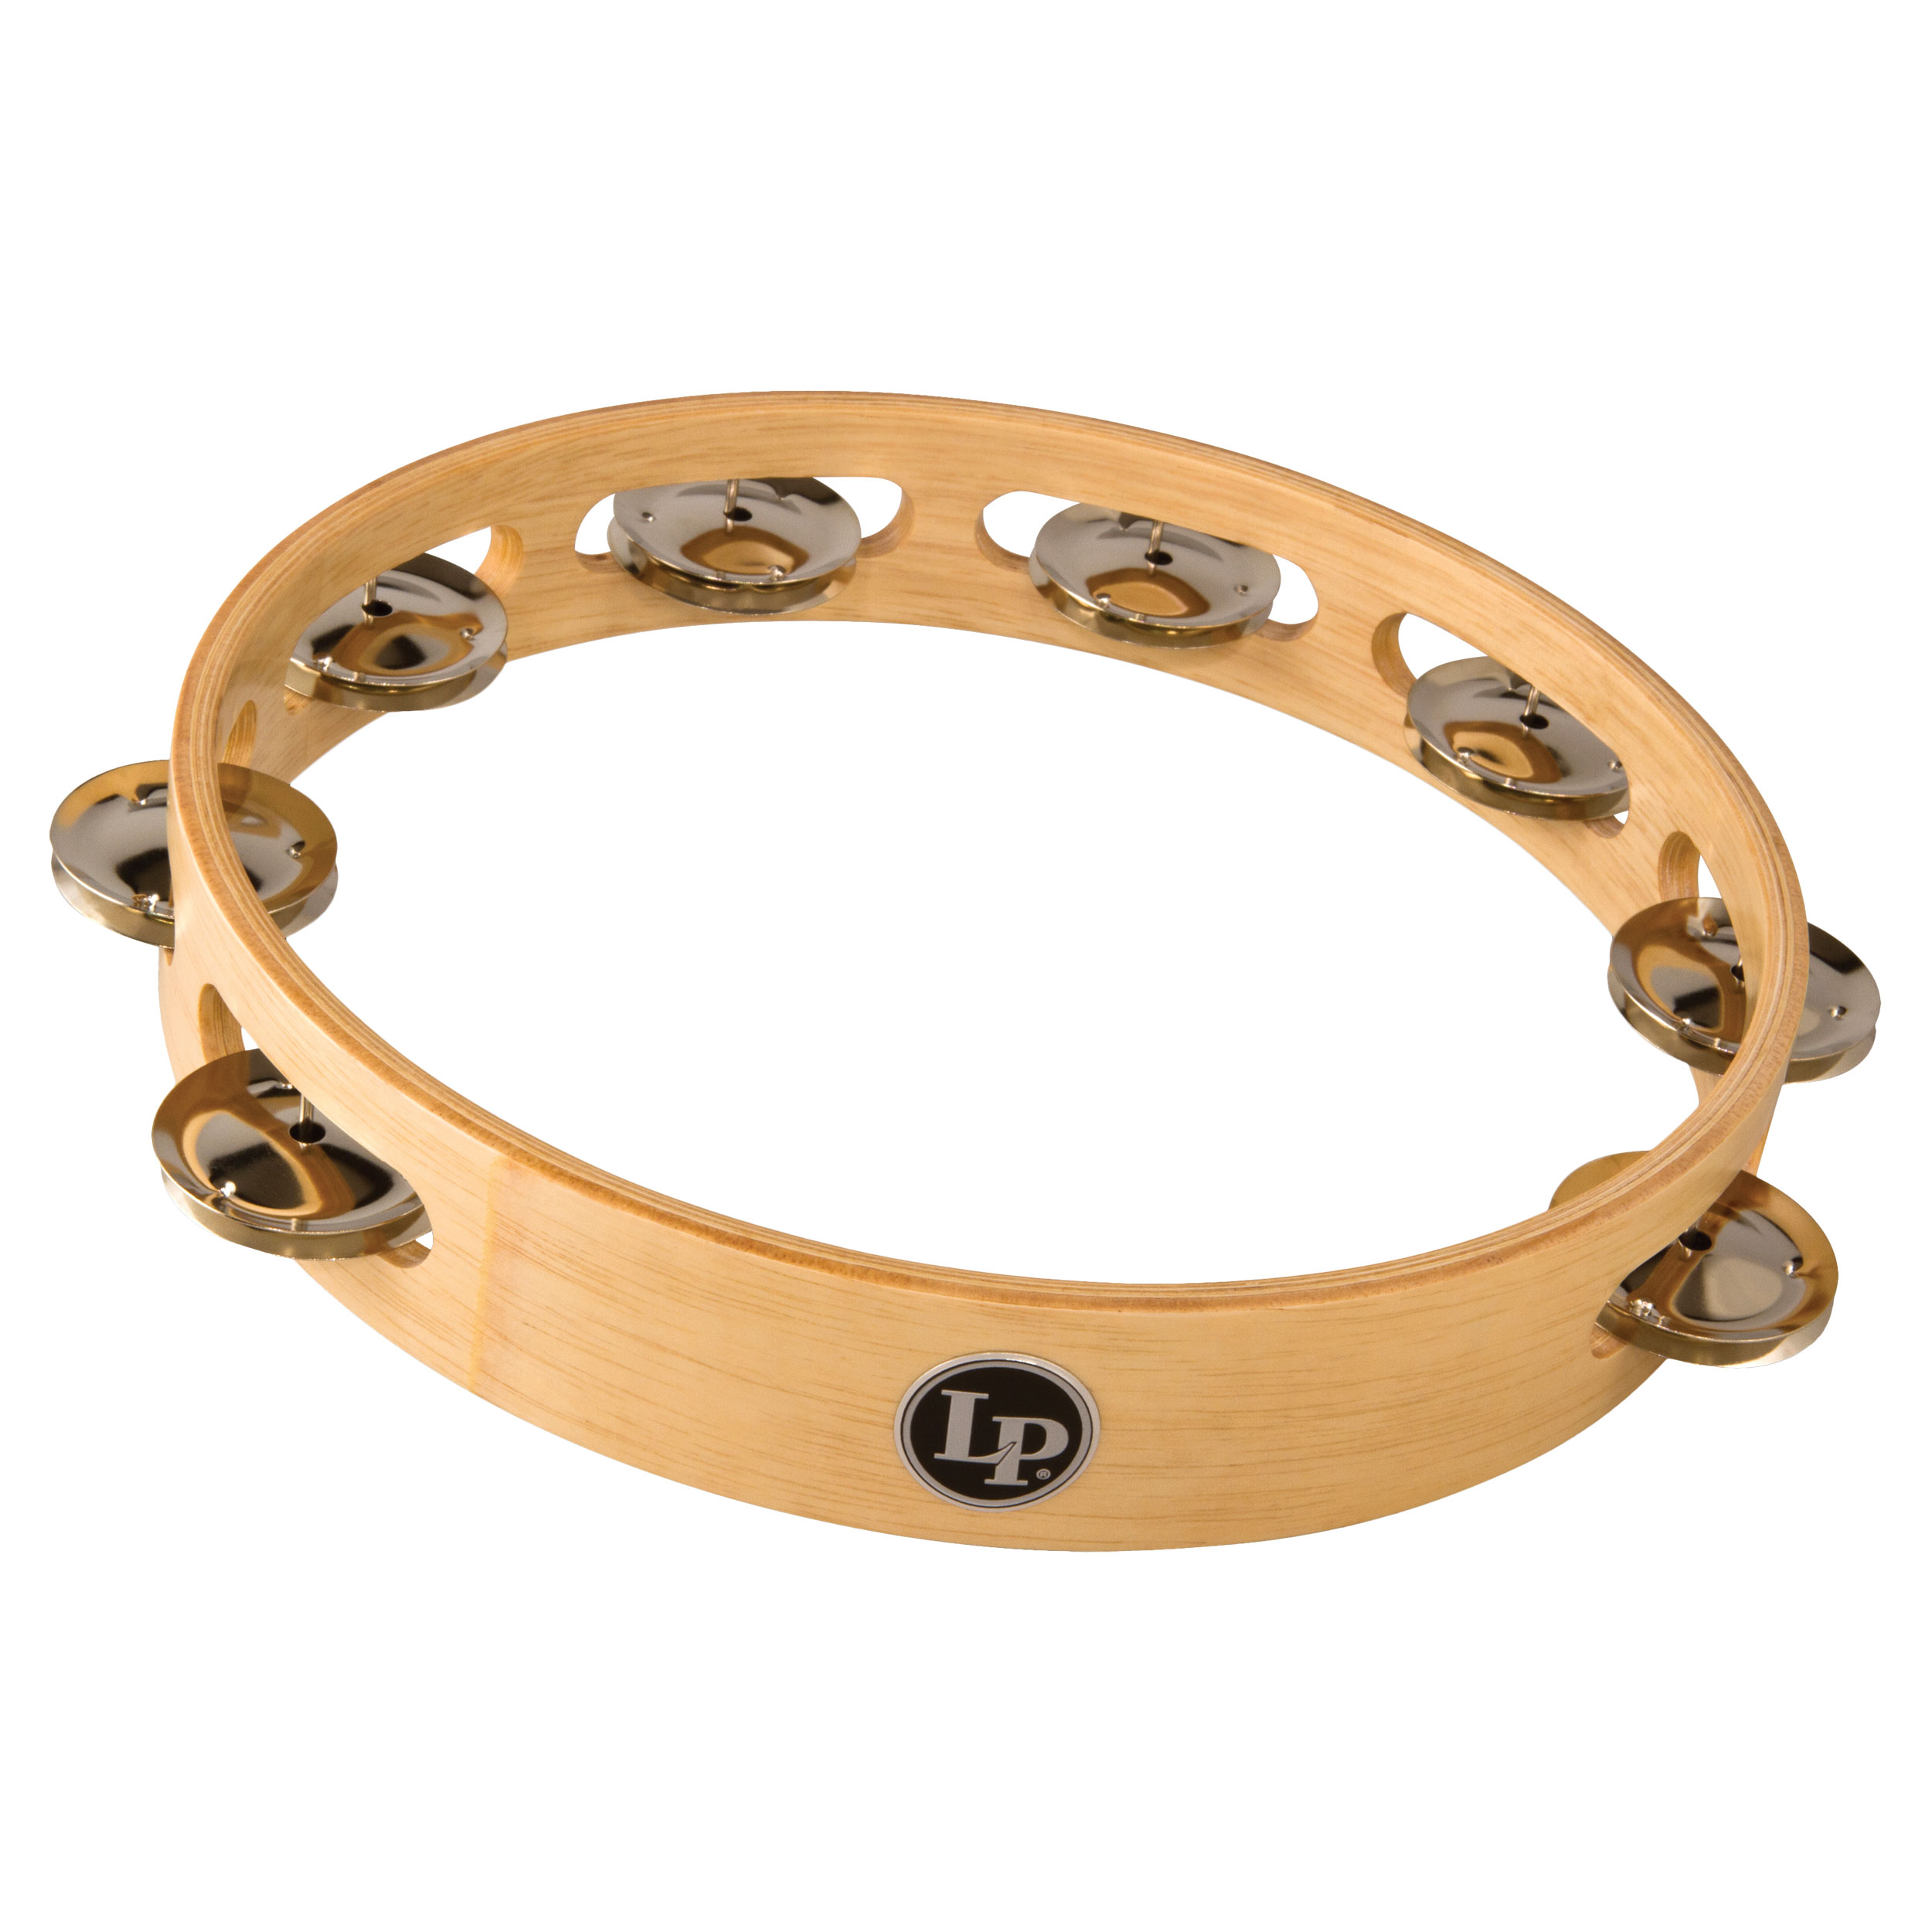 "LP 10"" Single Row Steel Tambourine"